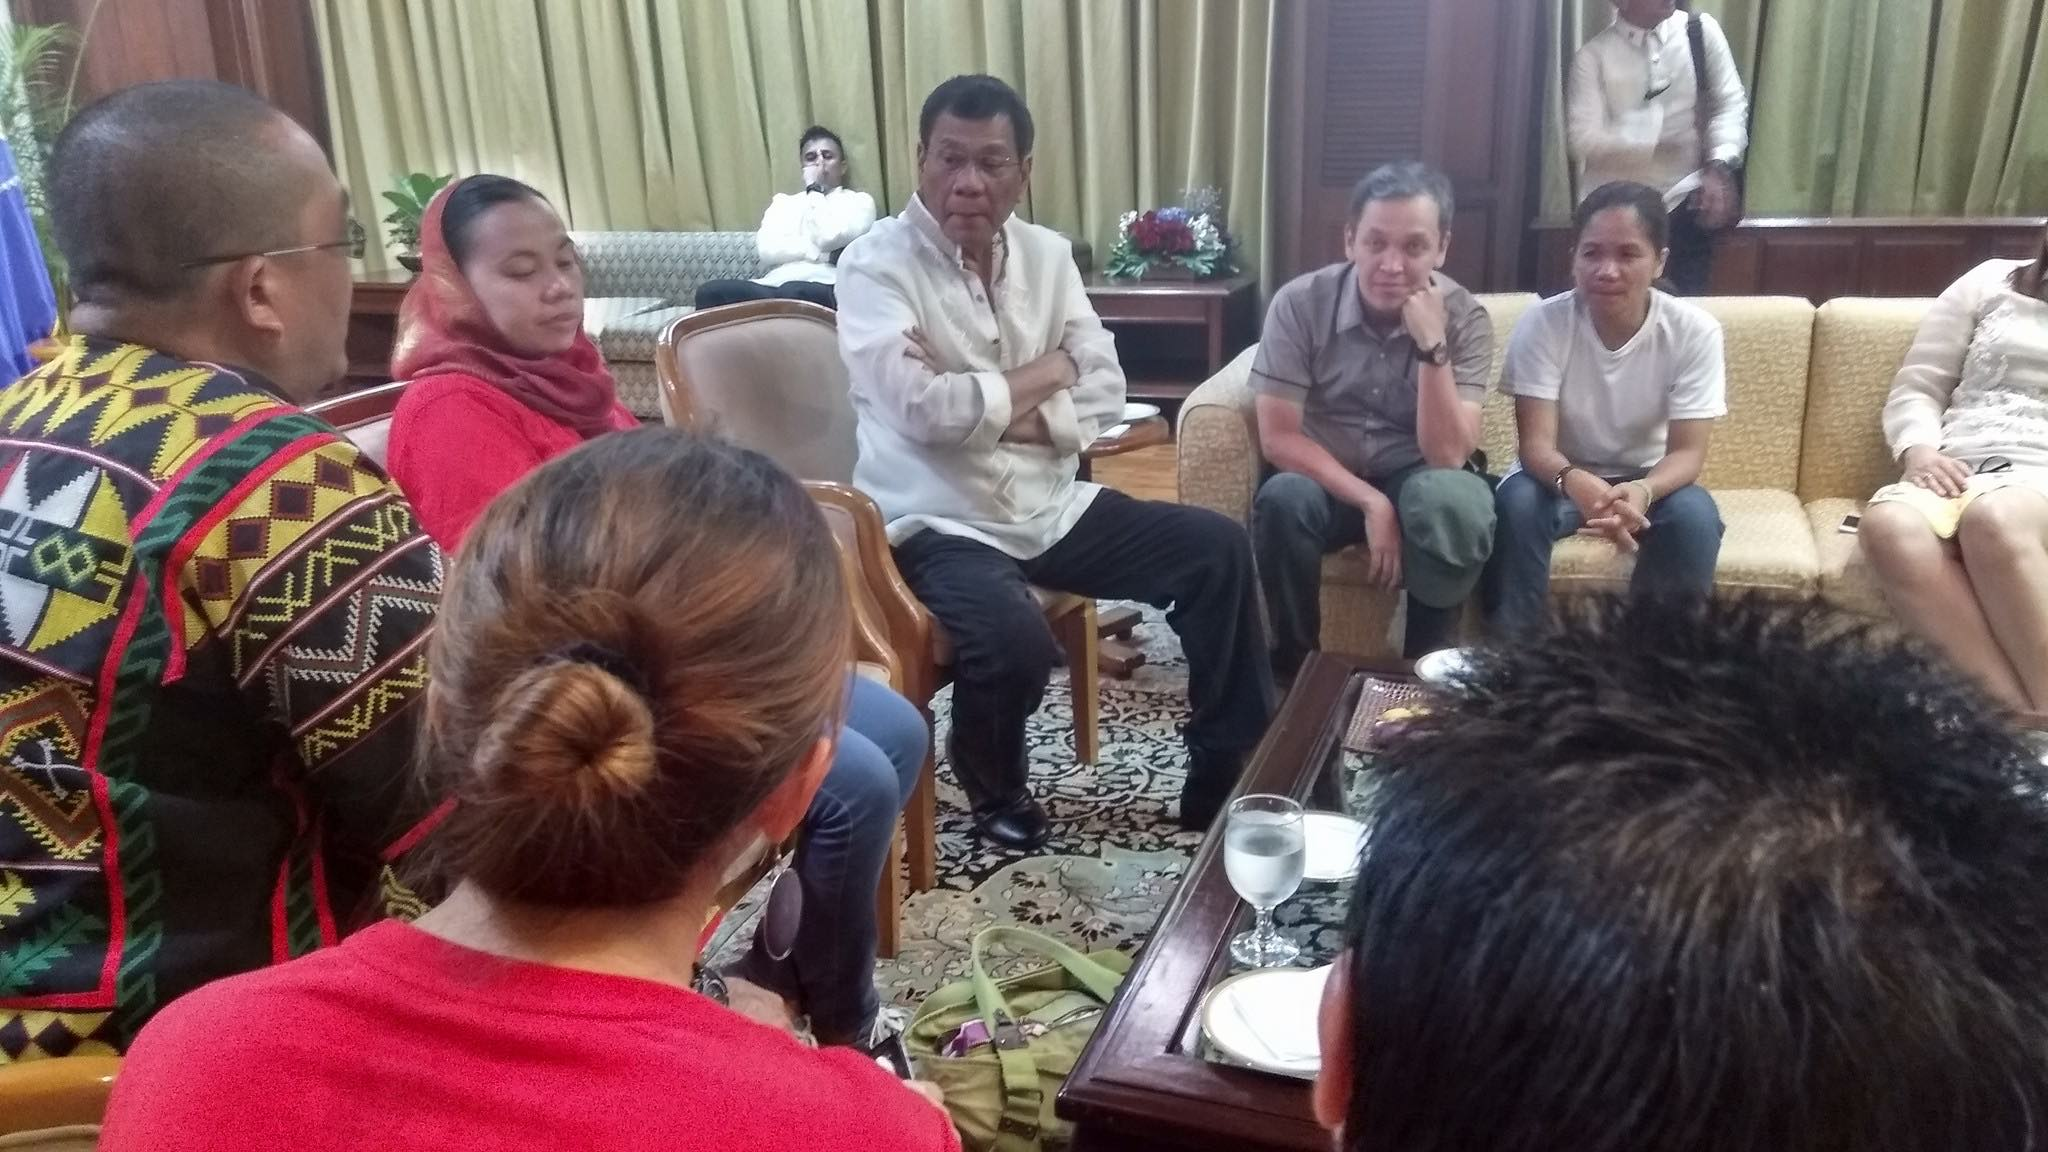 CONVERSATION. President Rodrigo Duterte meets with activists, lumad, and Moro leaders after his State of the Nation Address (SONA) on July 25, 2016. Photo courtesy of Renato Reyes Jr